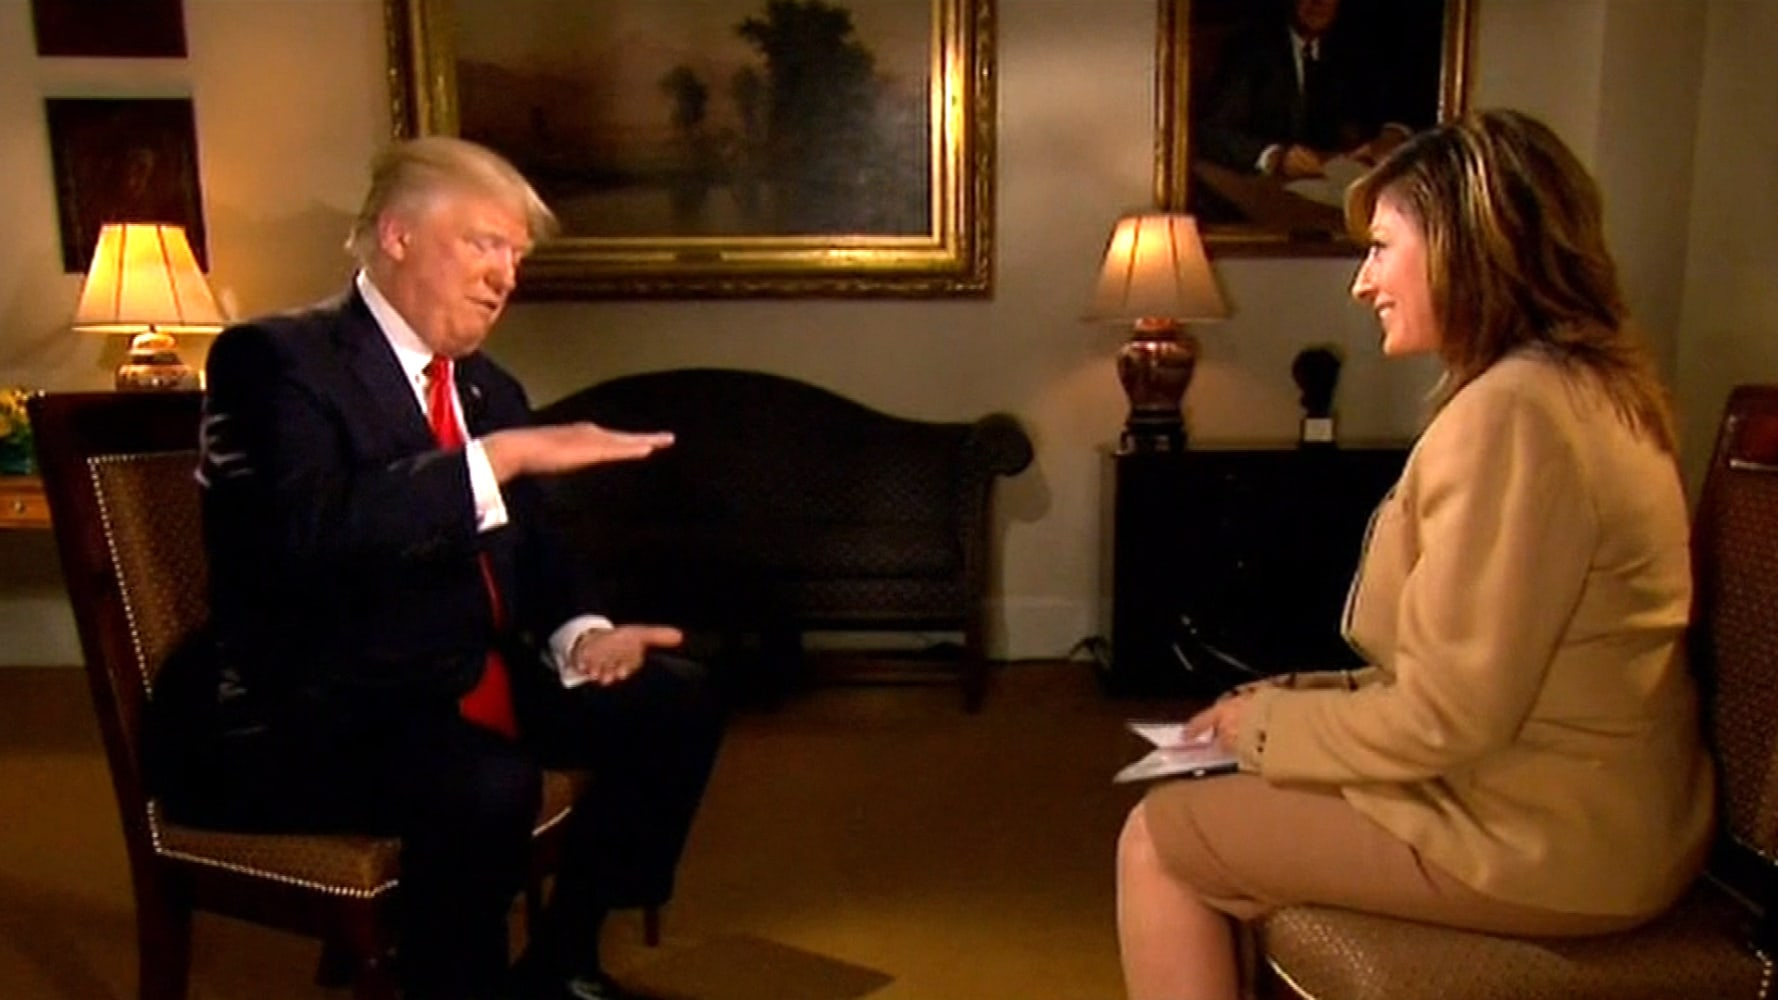 Donald Trump Shares Chocolate Cake and 'Great Chemistry' With ...